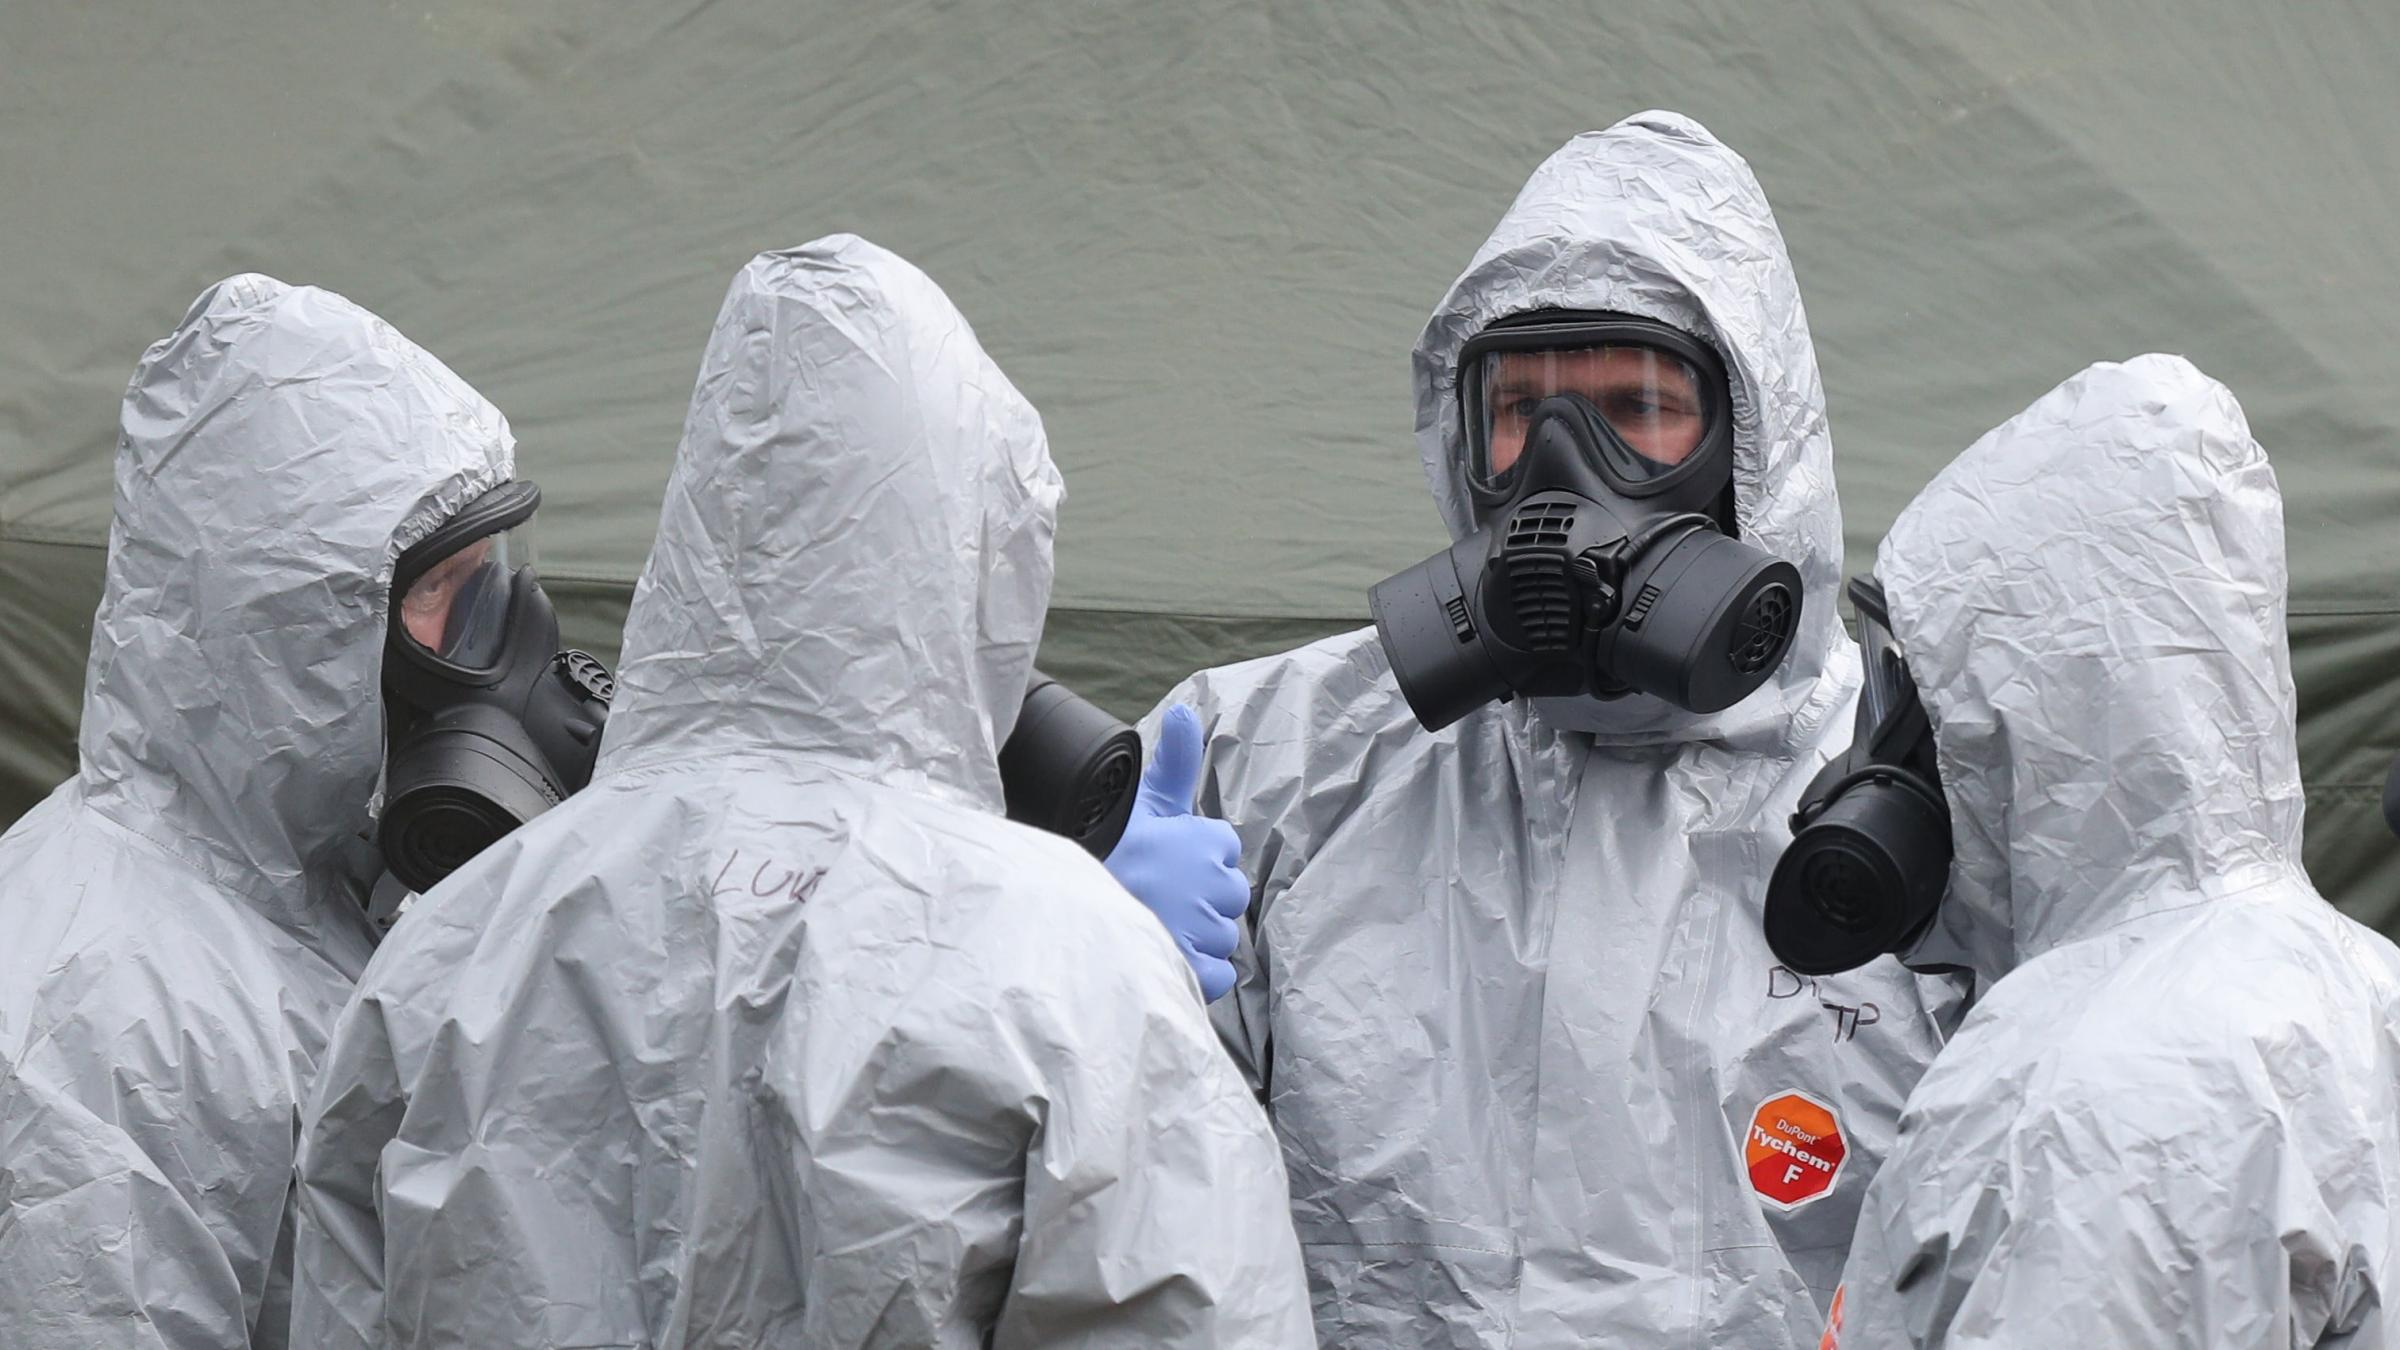 Amesbury Novichok poisoning raises 'serious questions' over Salisbury clean-up